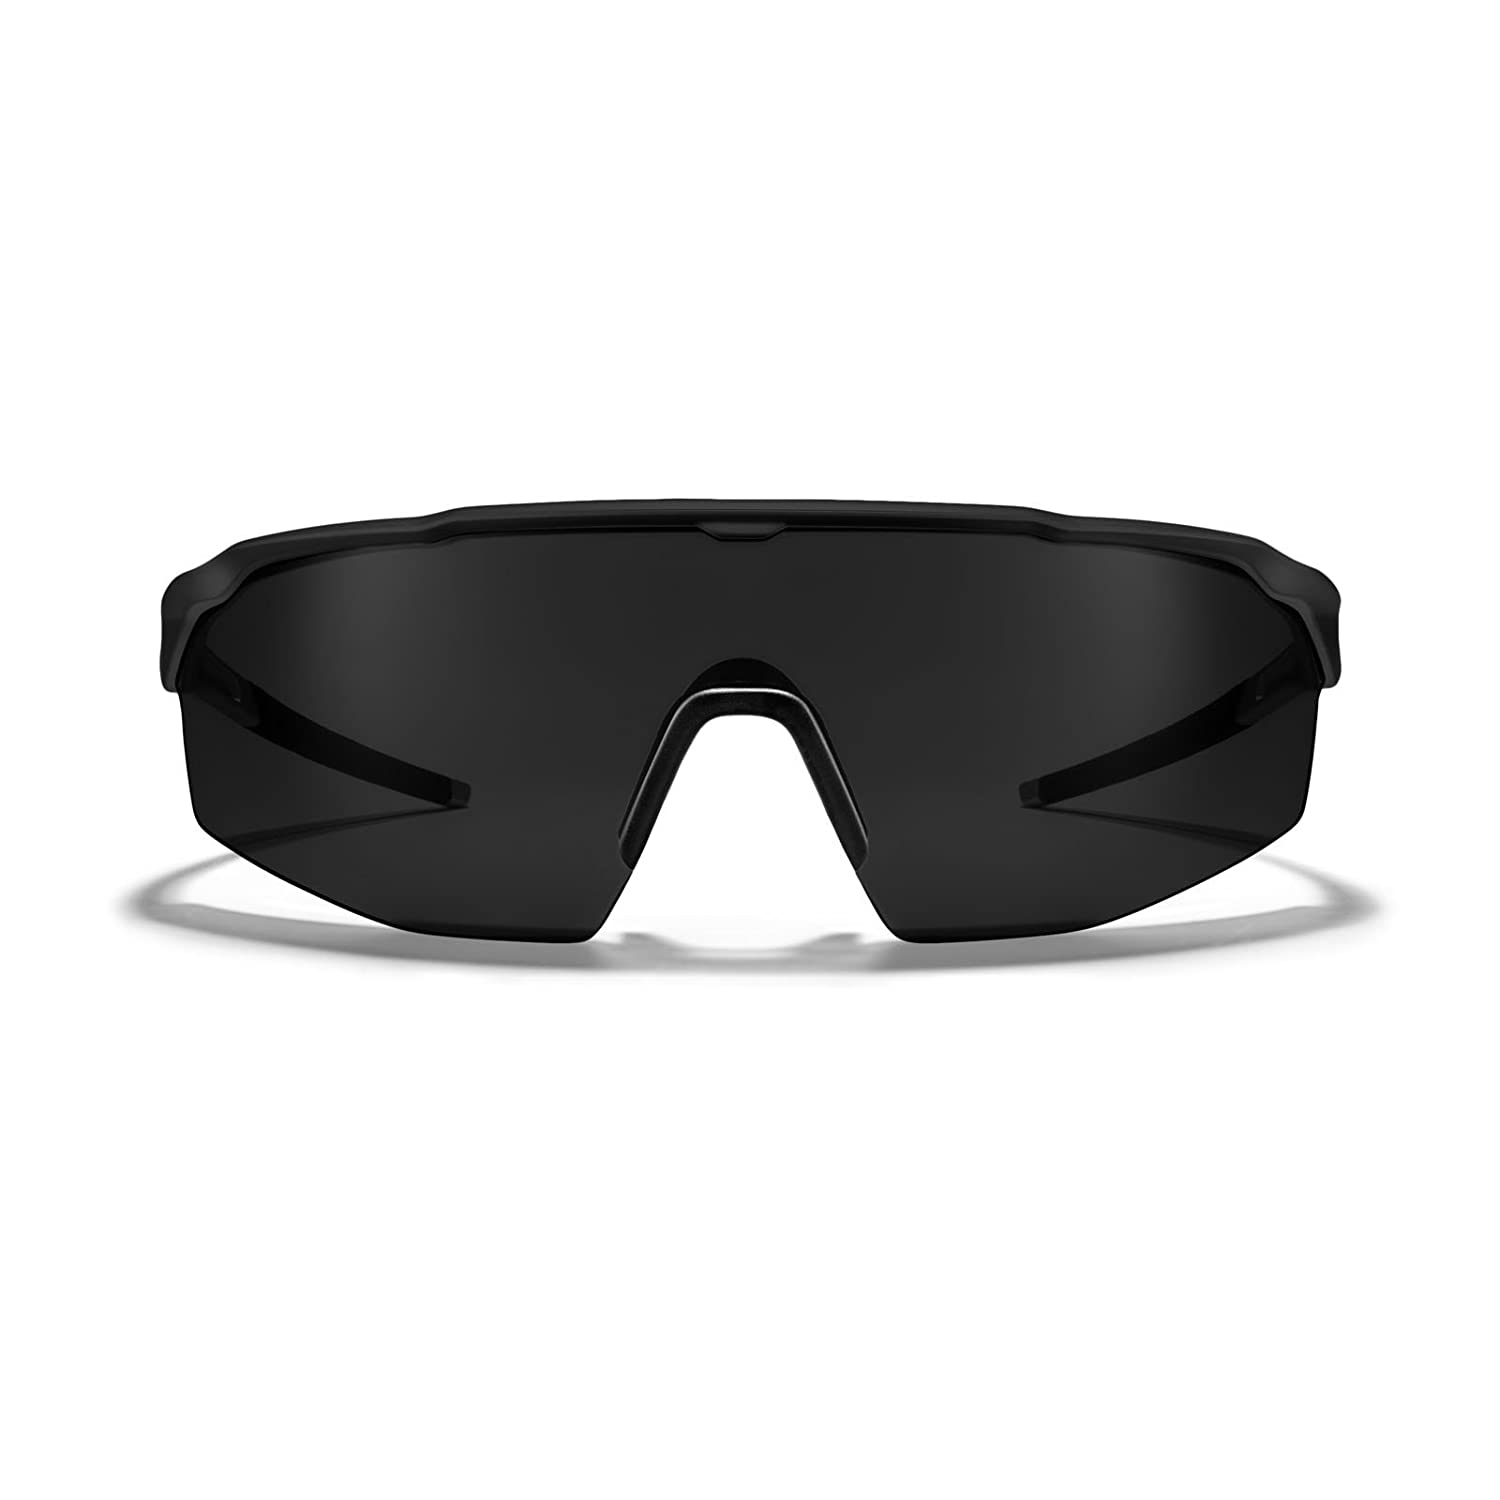 ROKA SR-1 APEX Advanced Sports Performance Ultra Light Weight Sunglasses Patented Gecko Pad No Slip Ideal Smaller Faces Men Women